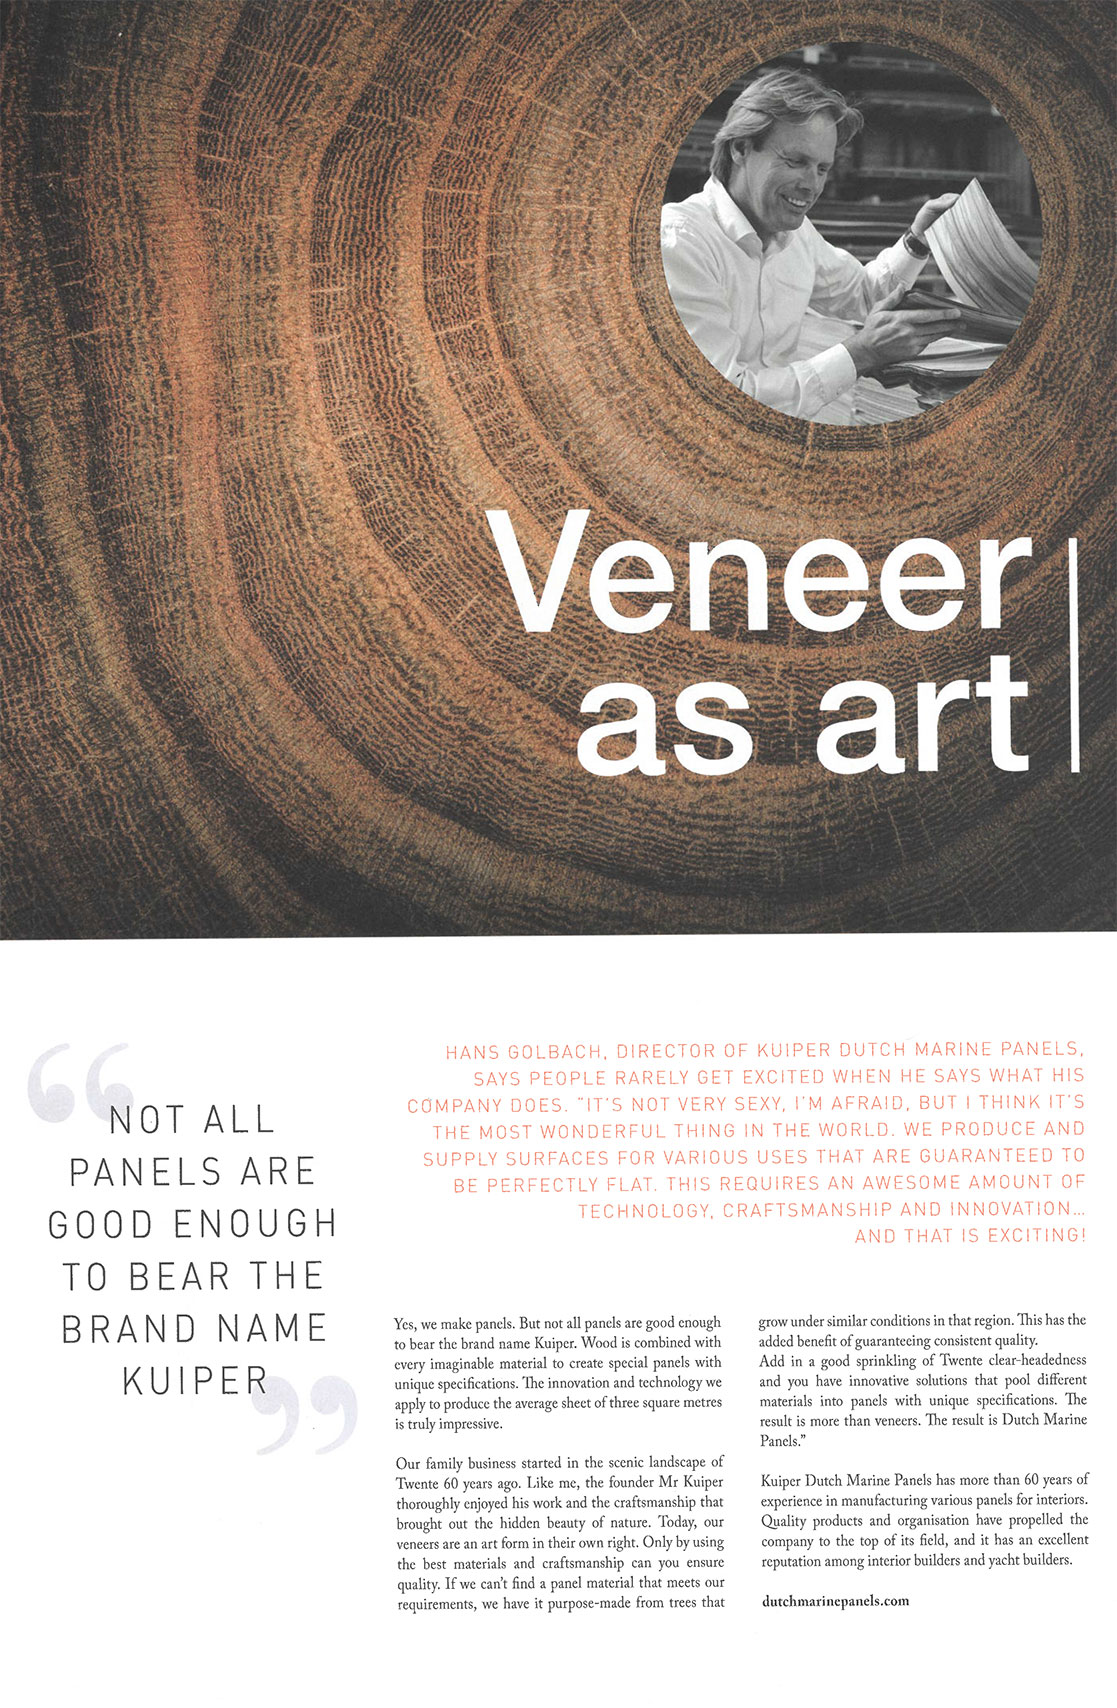 Kuiper Holland – Logo – Veneer as art